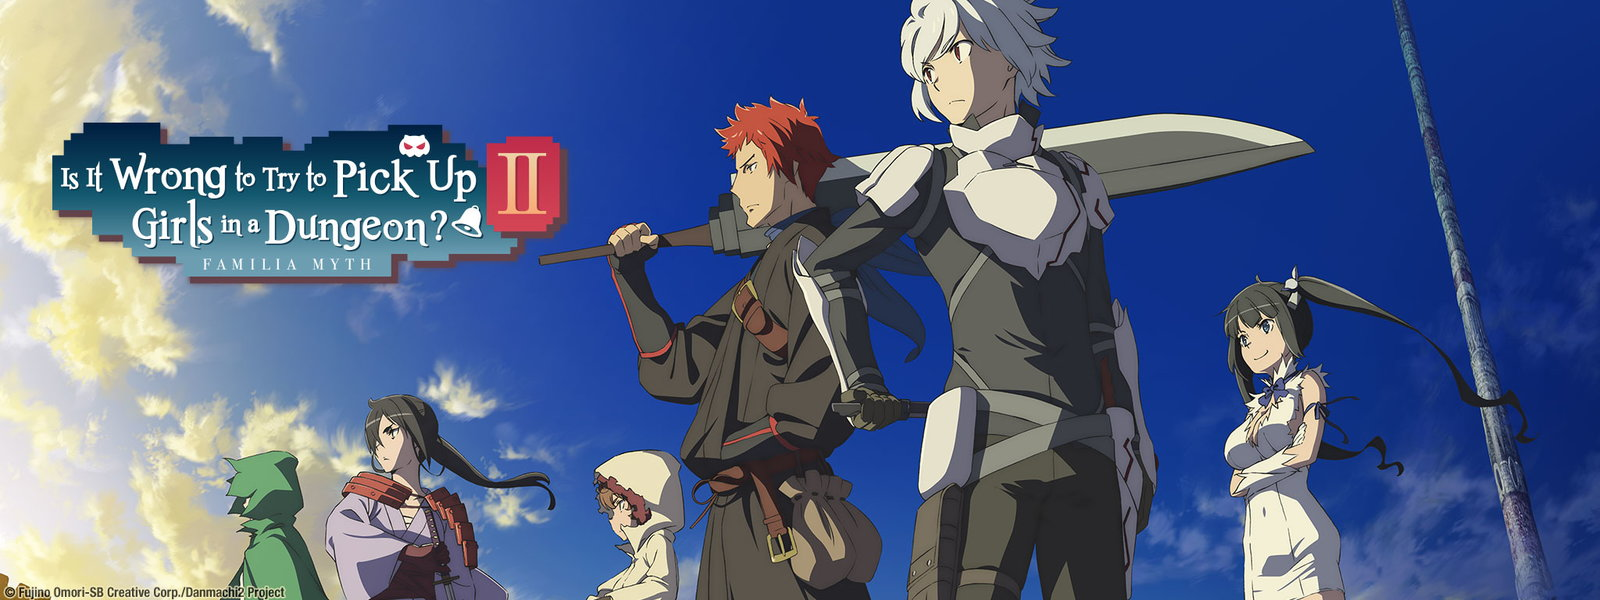 Watch Is It Wrong to Try to Pick Up Girls in a Dungeon? Online at Hulu